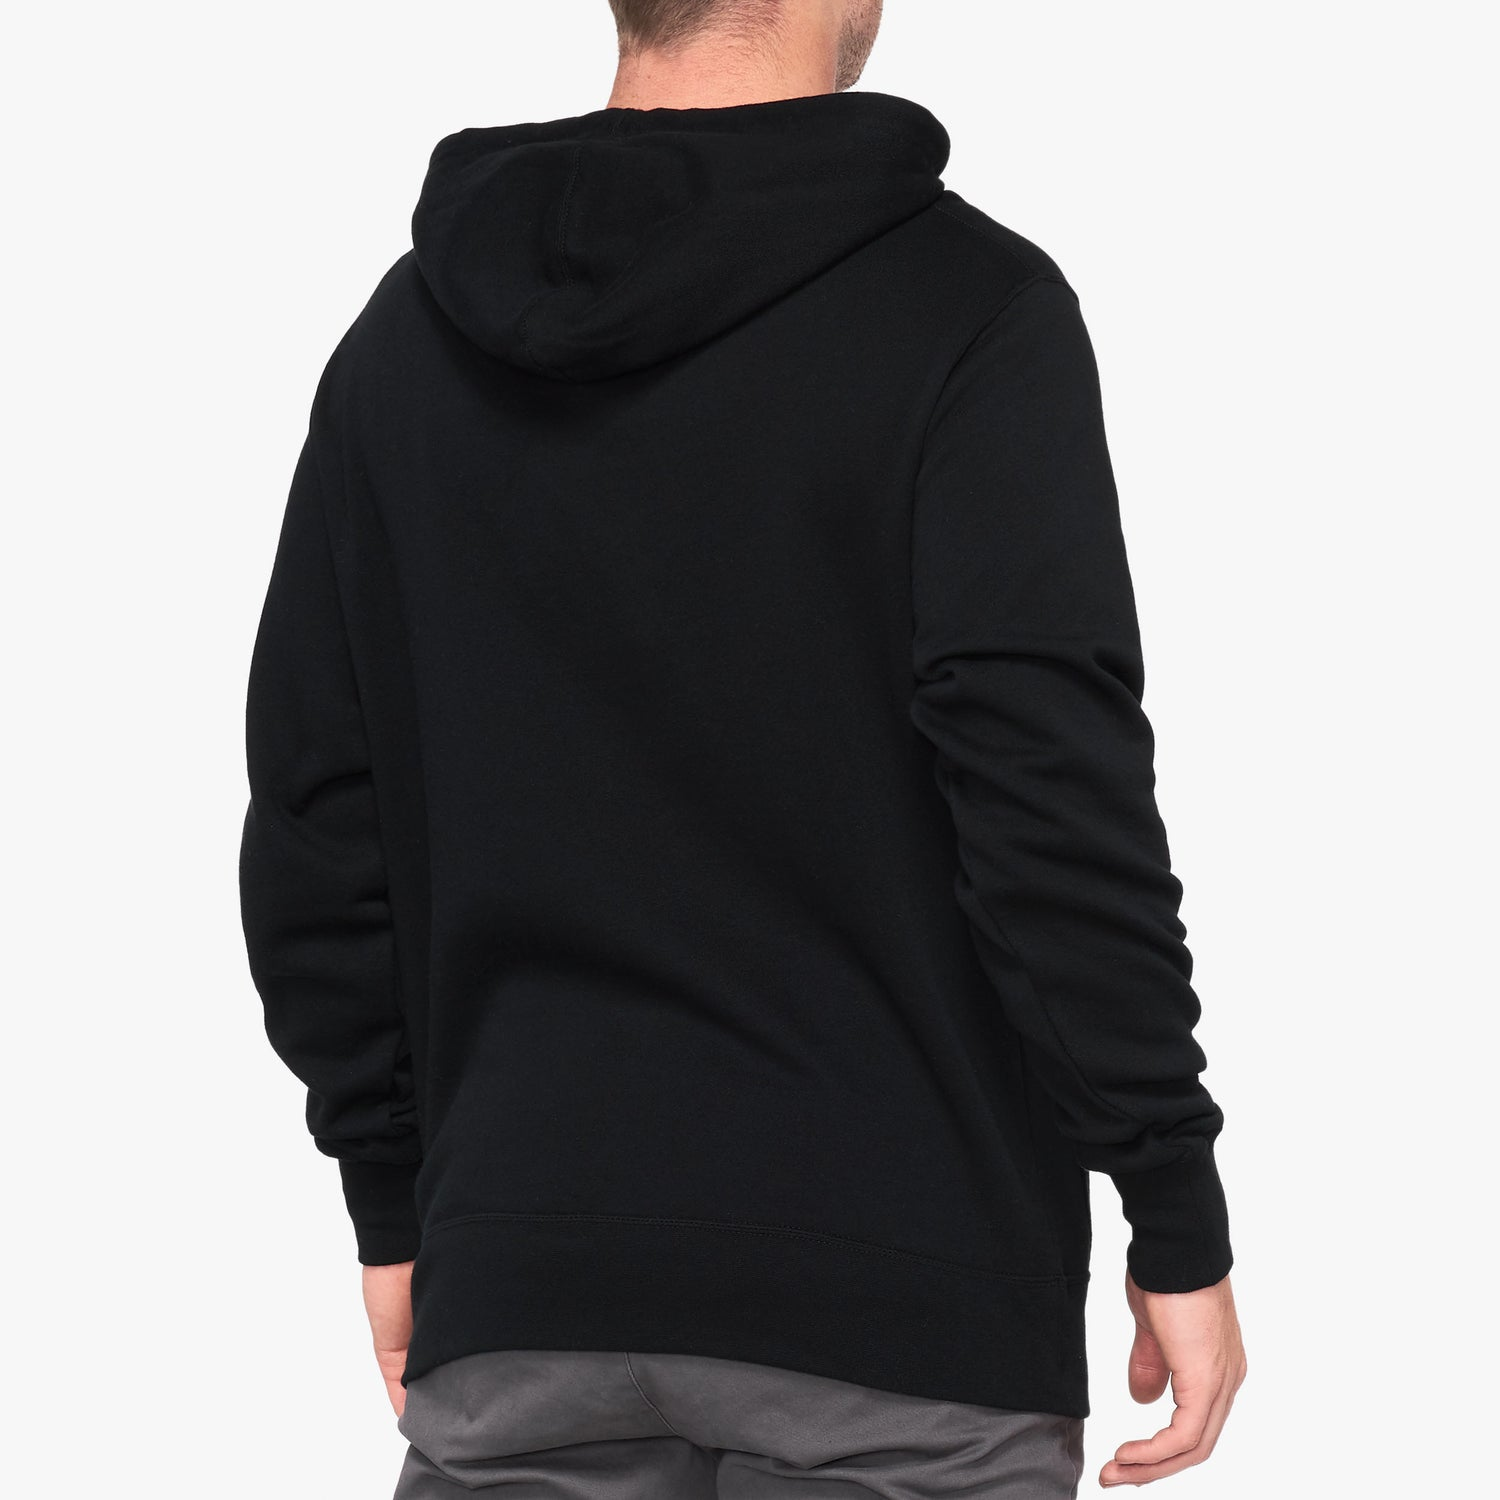 ESSENTIAL Hooded Sweatshirt - Black